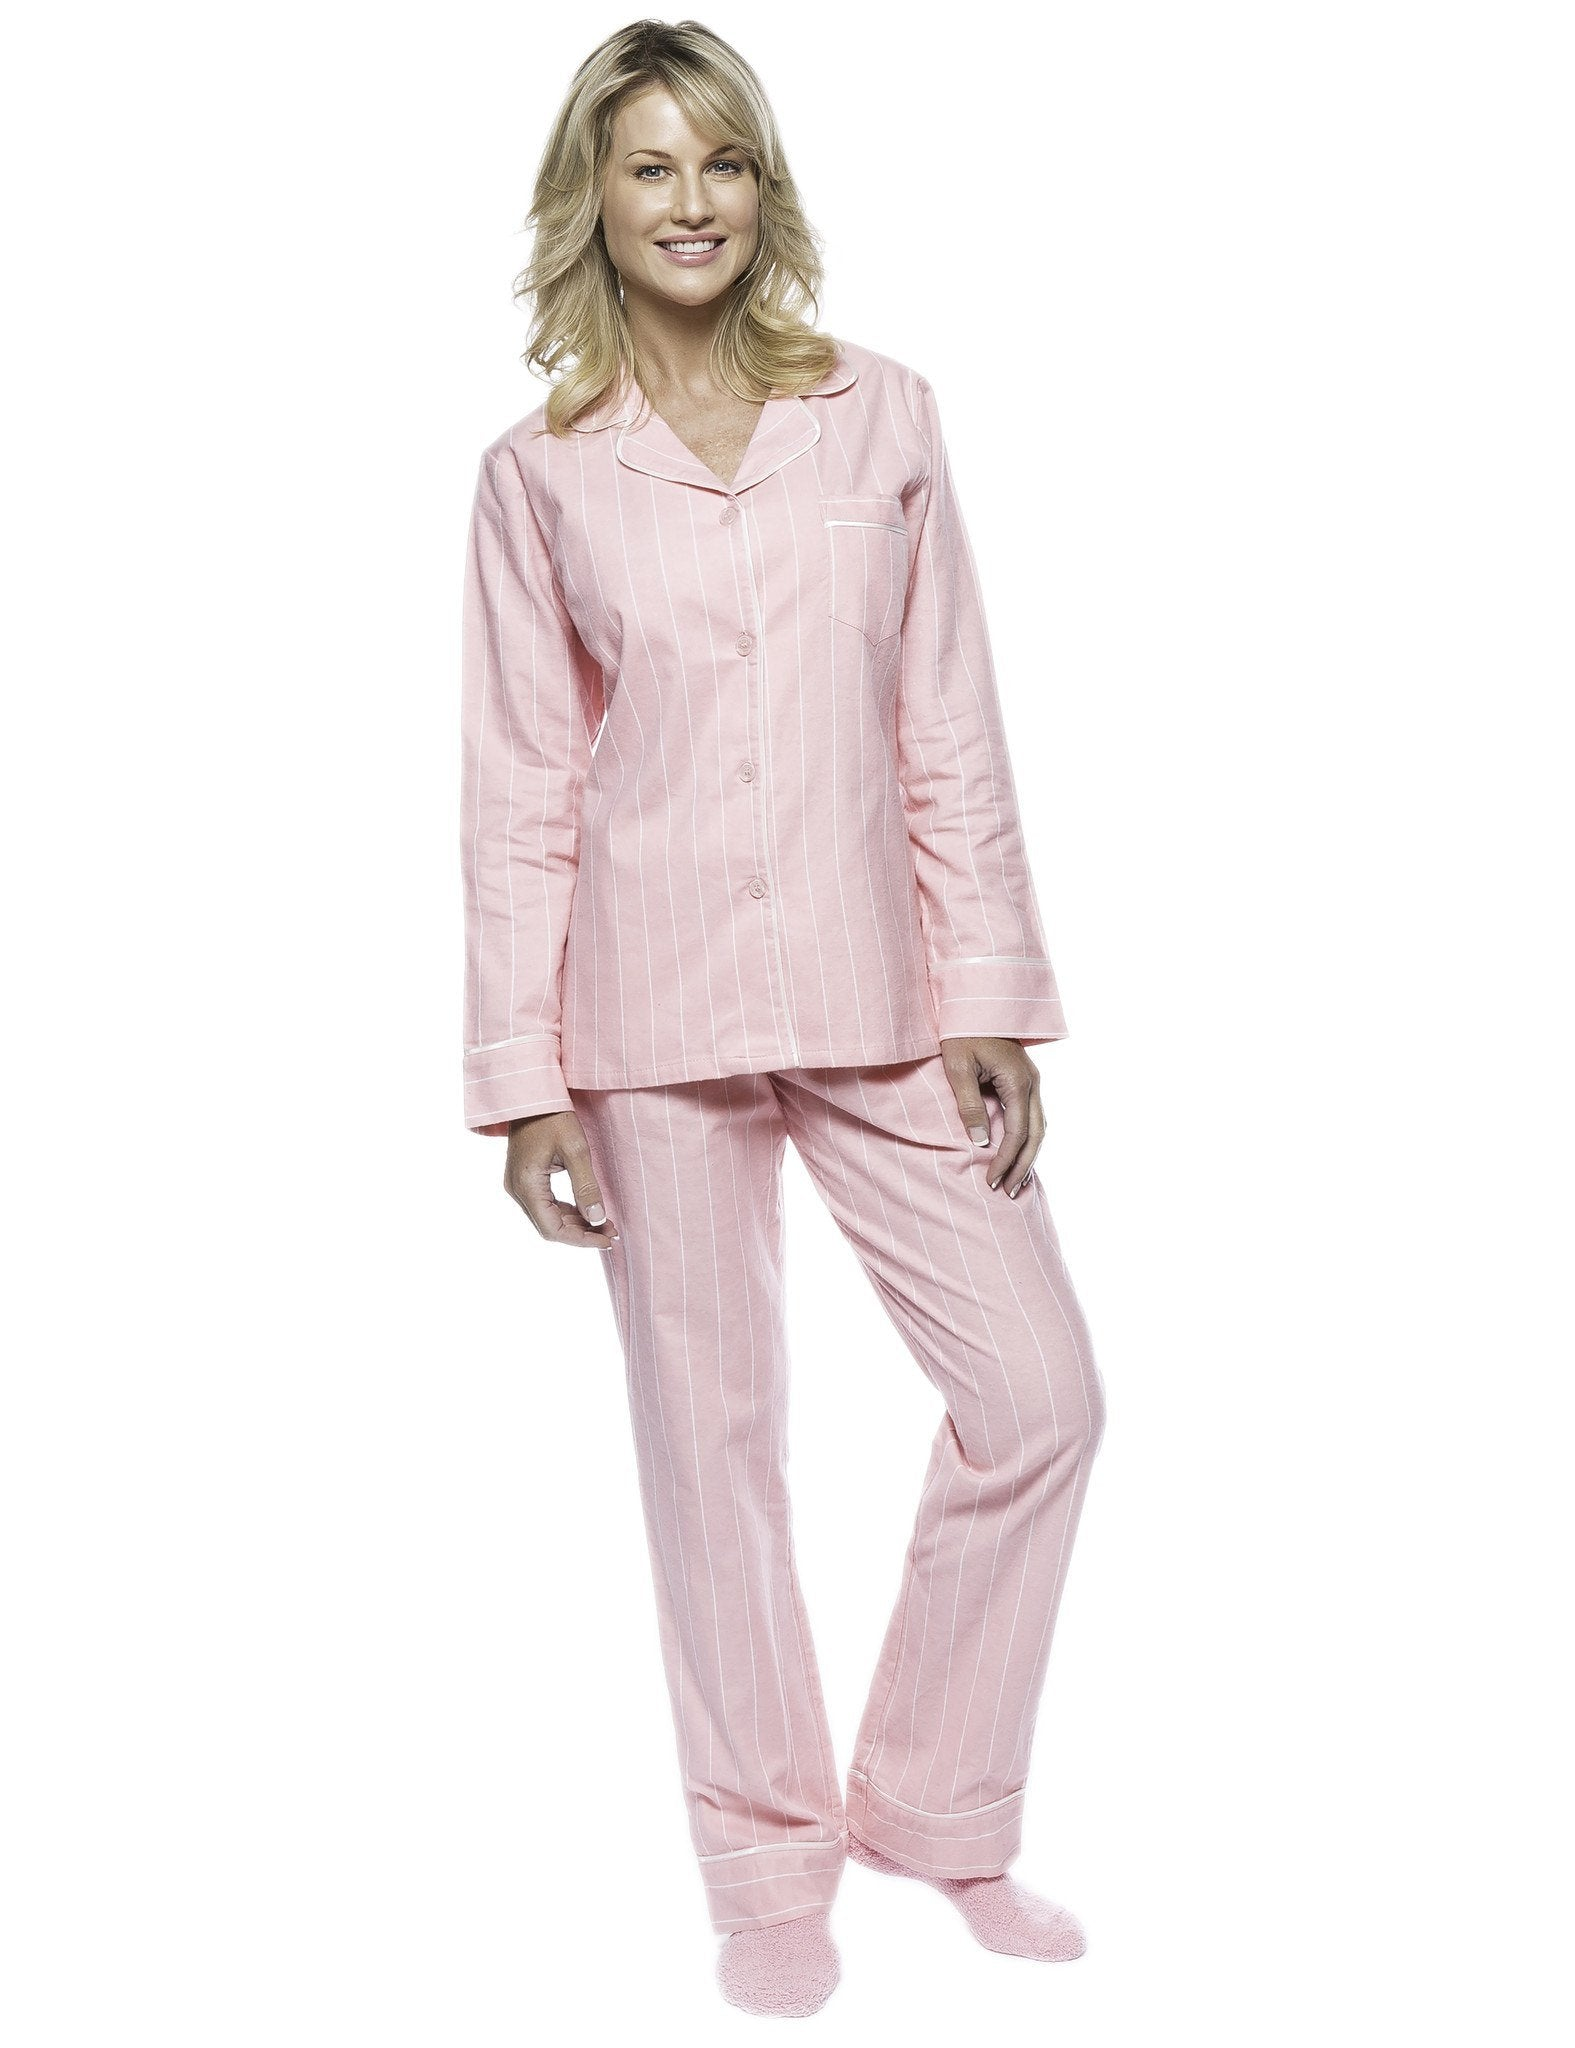 Boxed Pacakged Womens Premium Cotton Flannel Pajama Sleepwear Set with Free Plush Socks - Stripes Pink